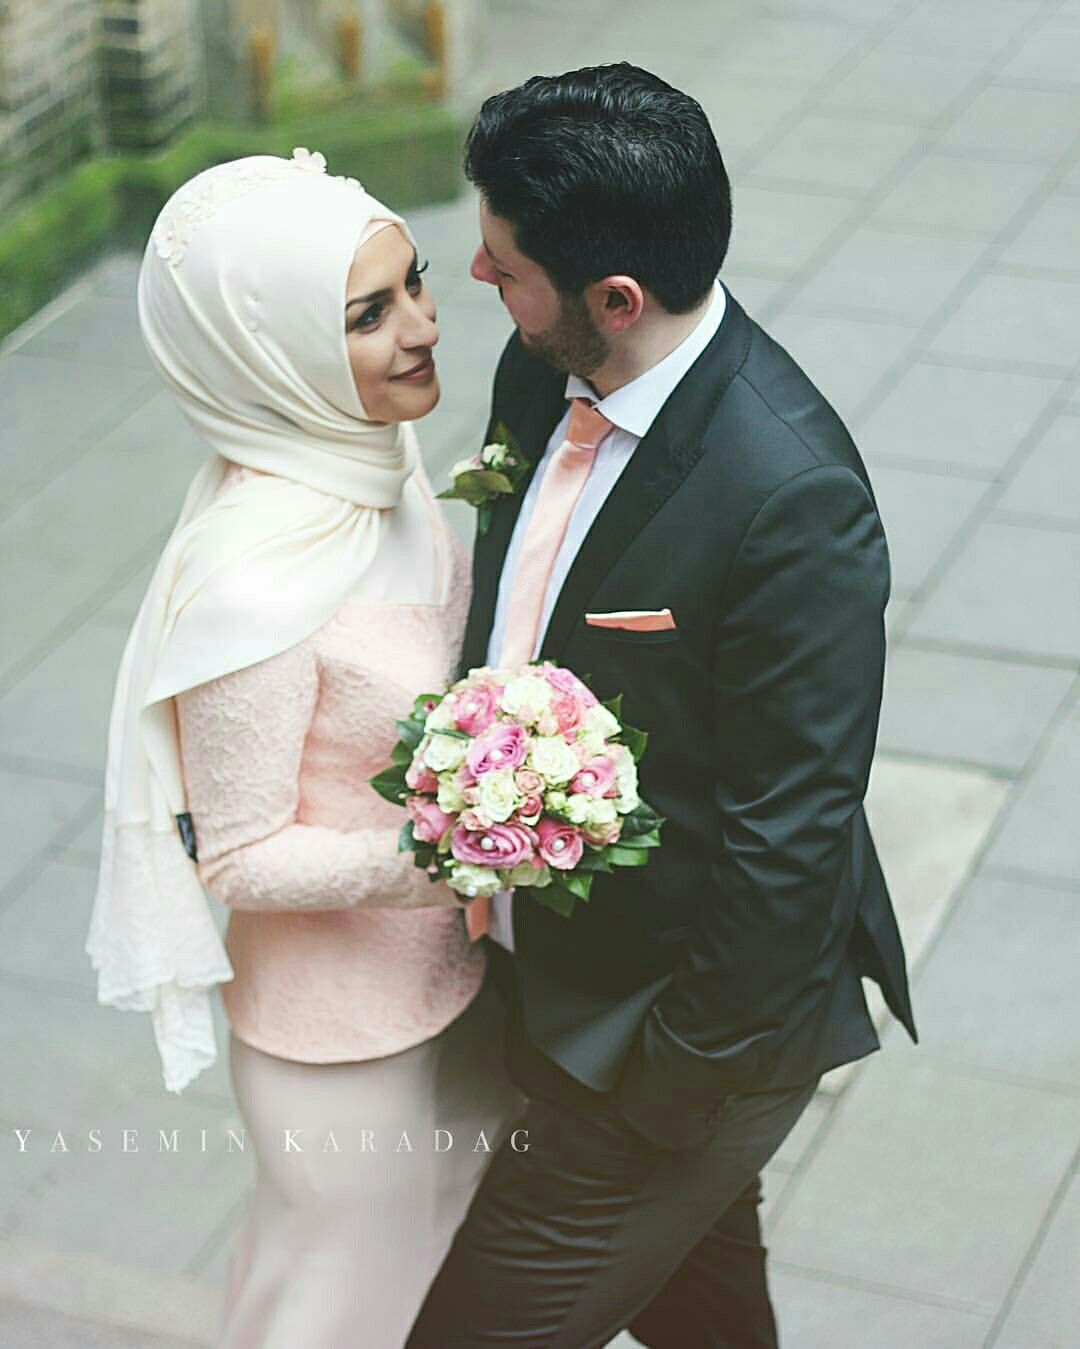 Pin by saralnazeer saral on romantic pinterest muslim couples